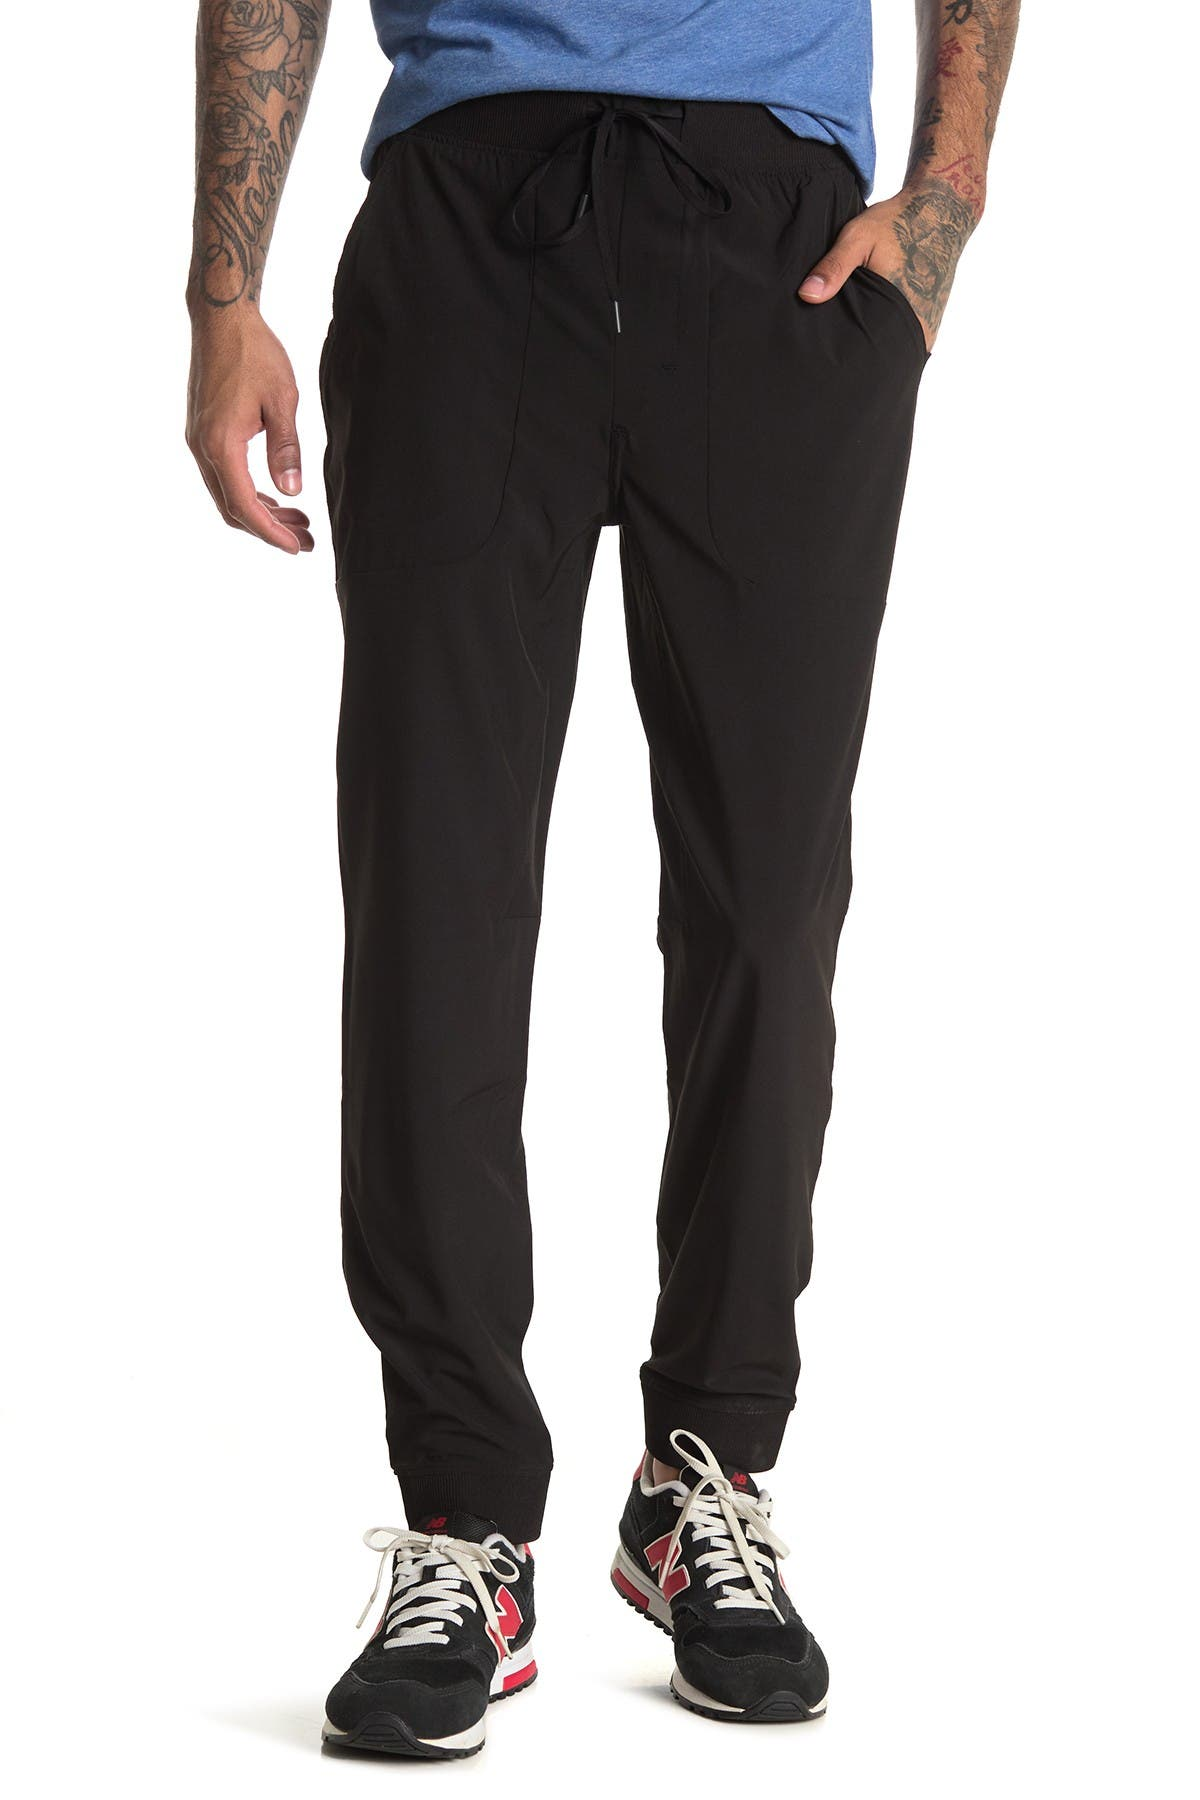 Image of 90 Degree By Reflex Drawstring Woven Jogger Pants